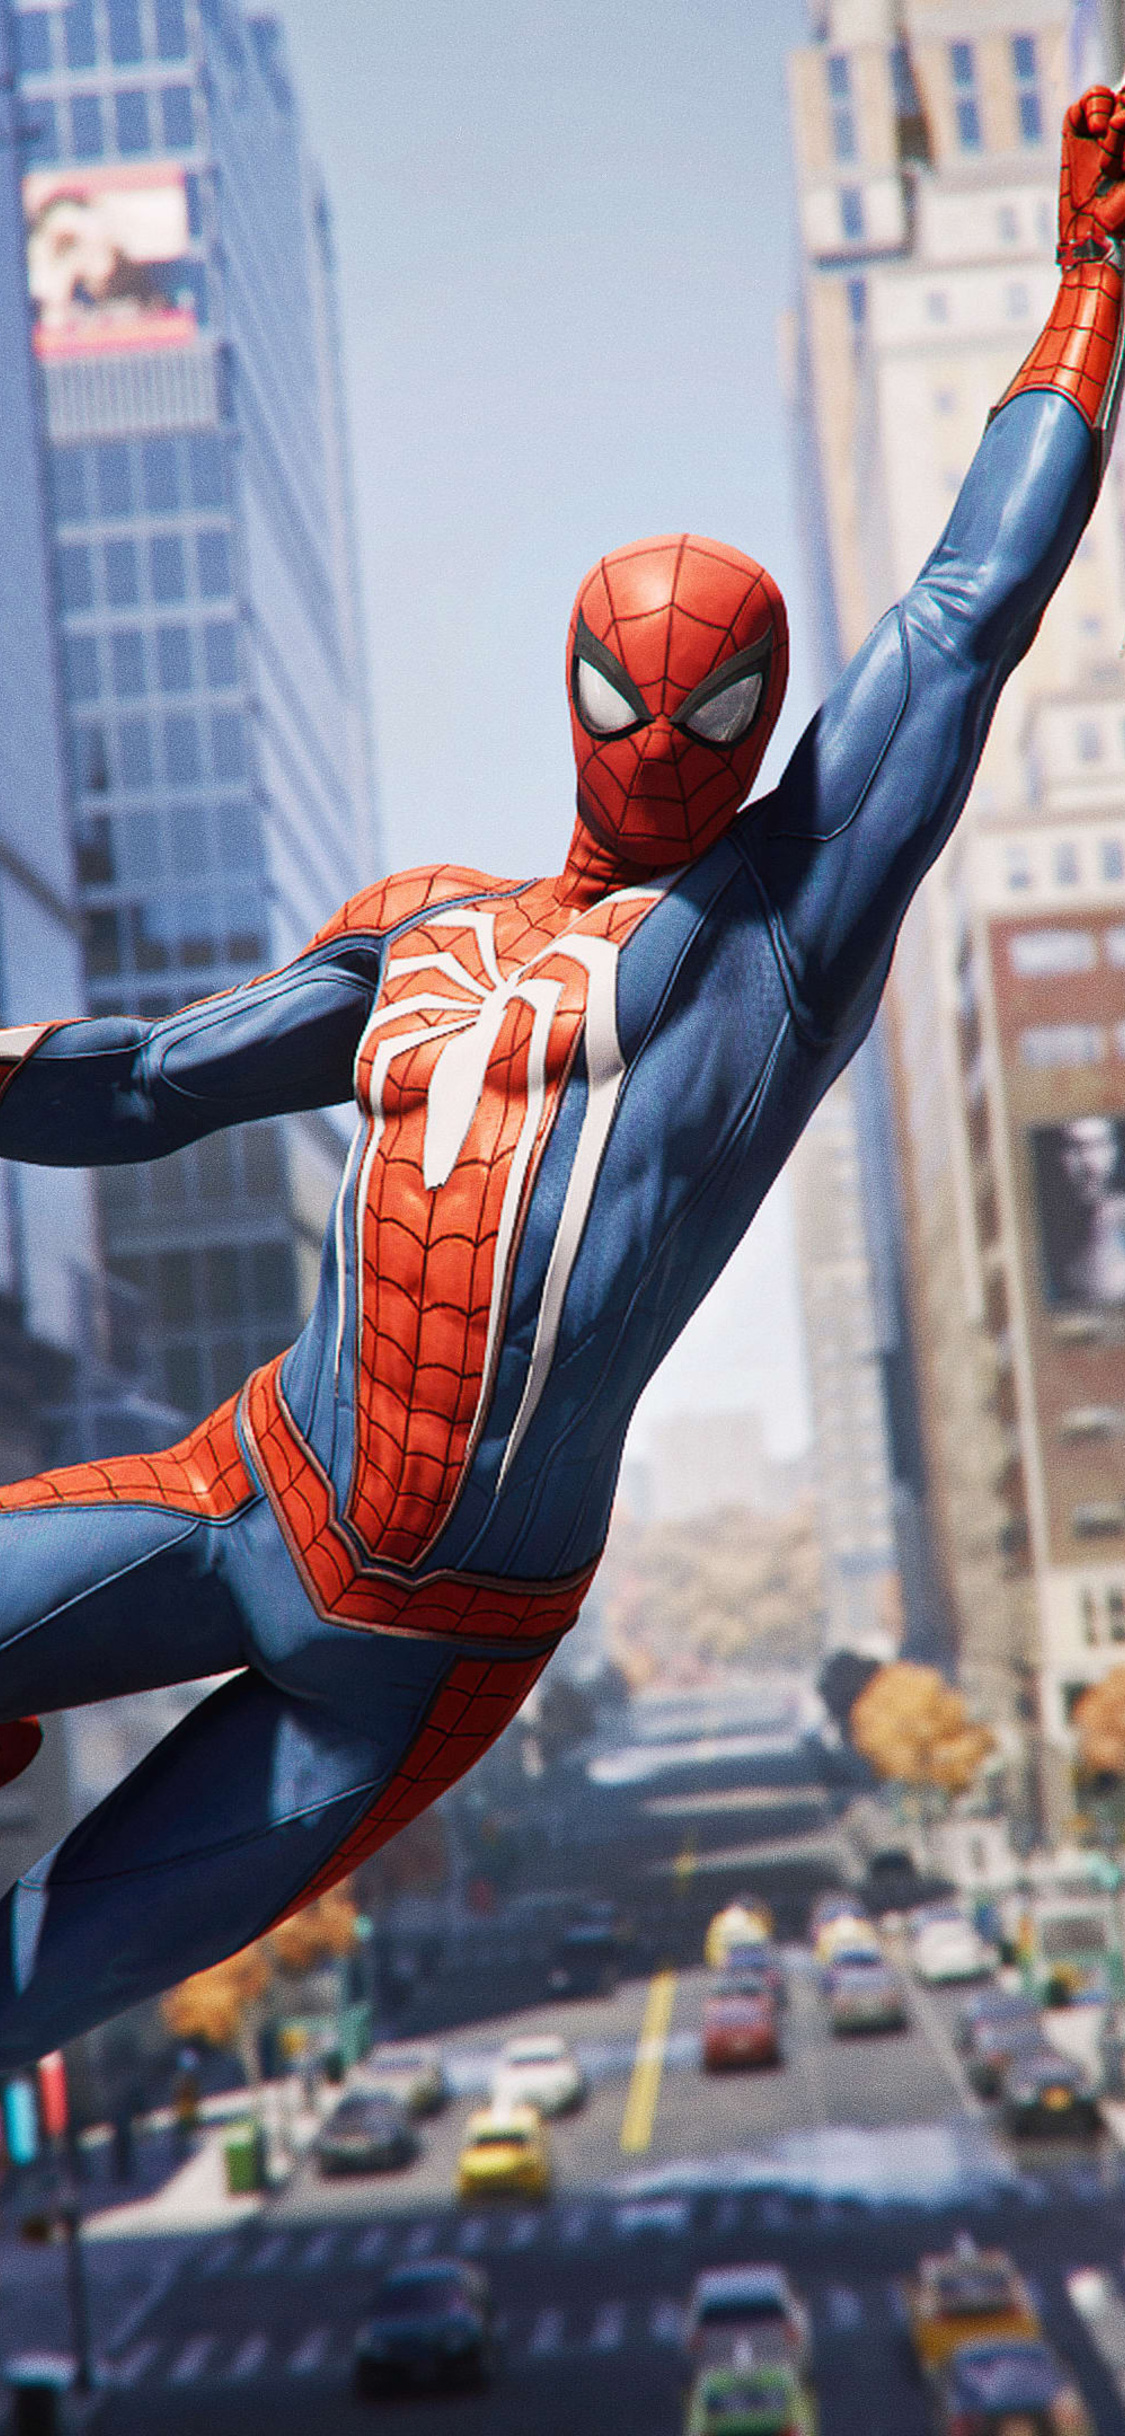 1125x2436 Spiderman Ps4 Pro 4k Iphone XS,Iphone 10,Iphone ...